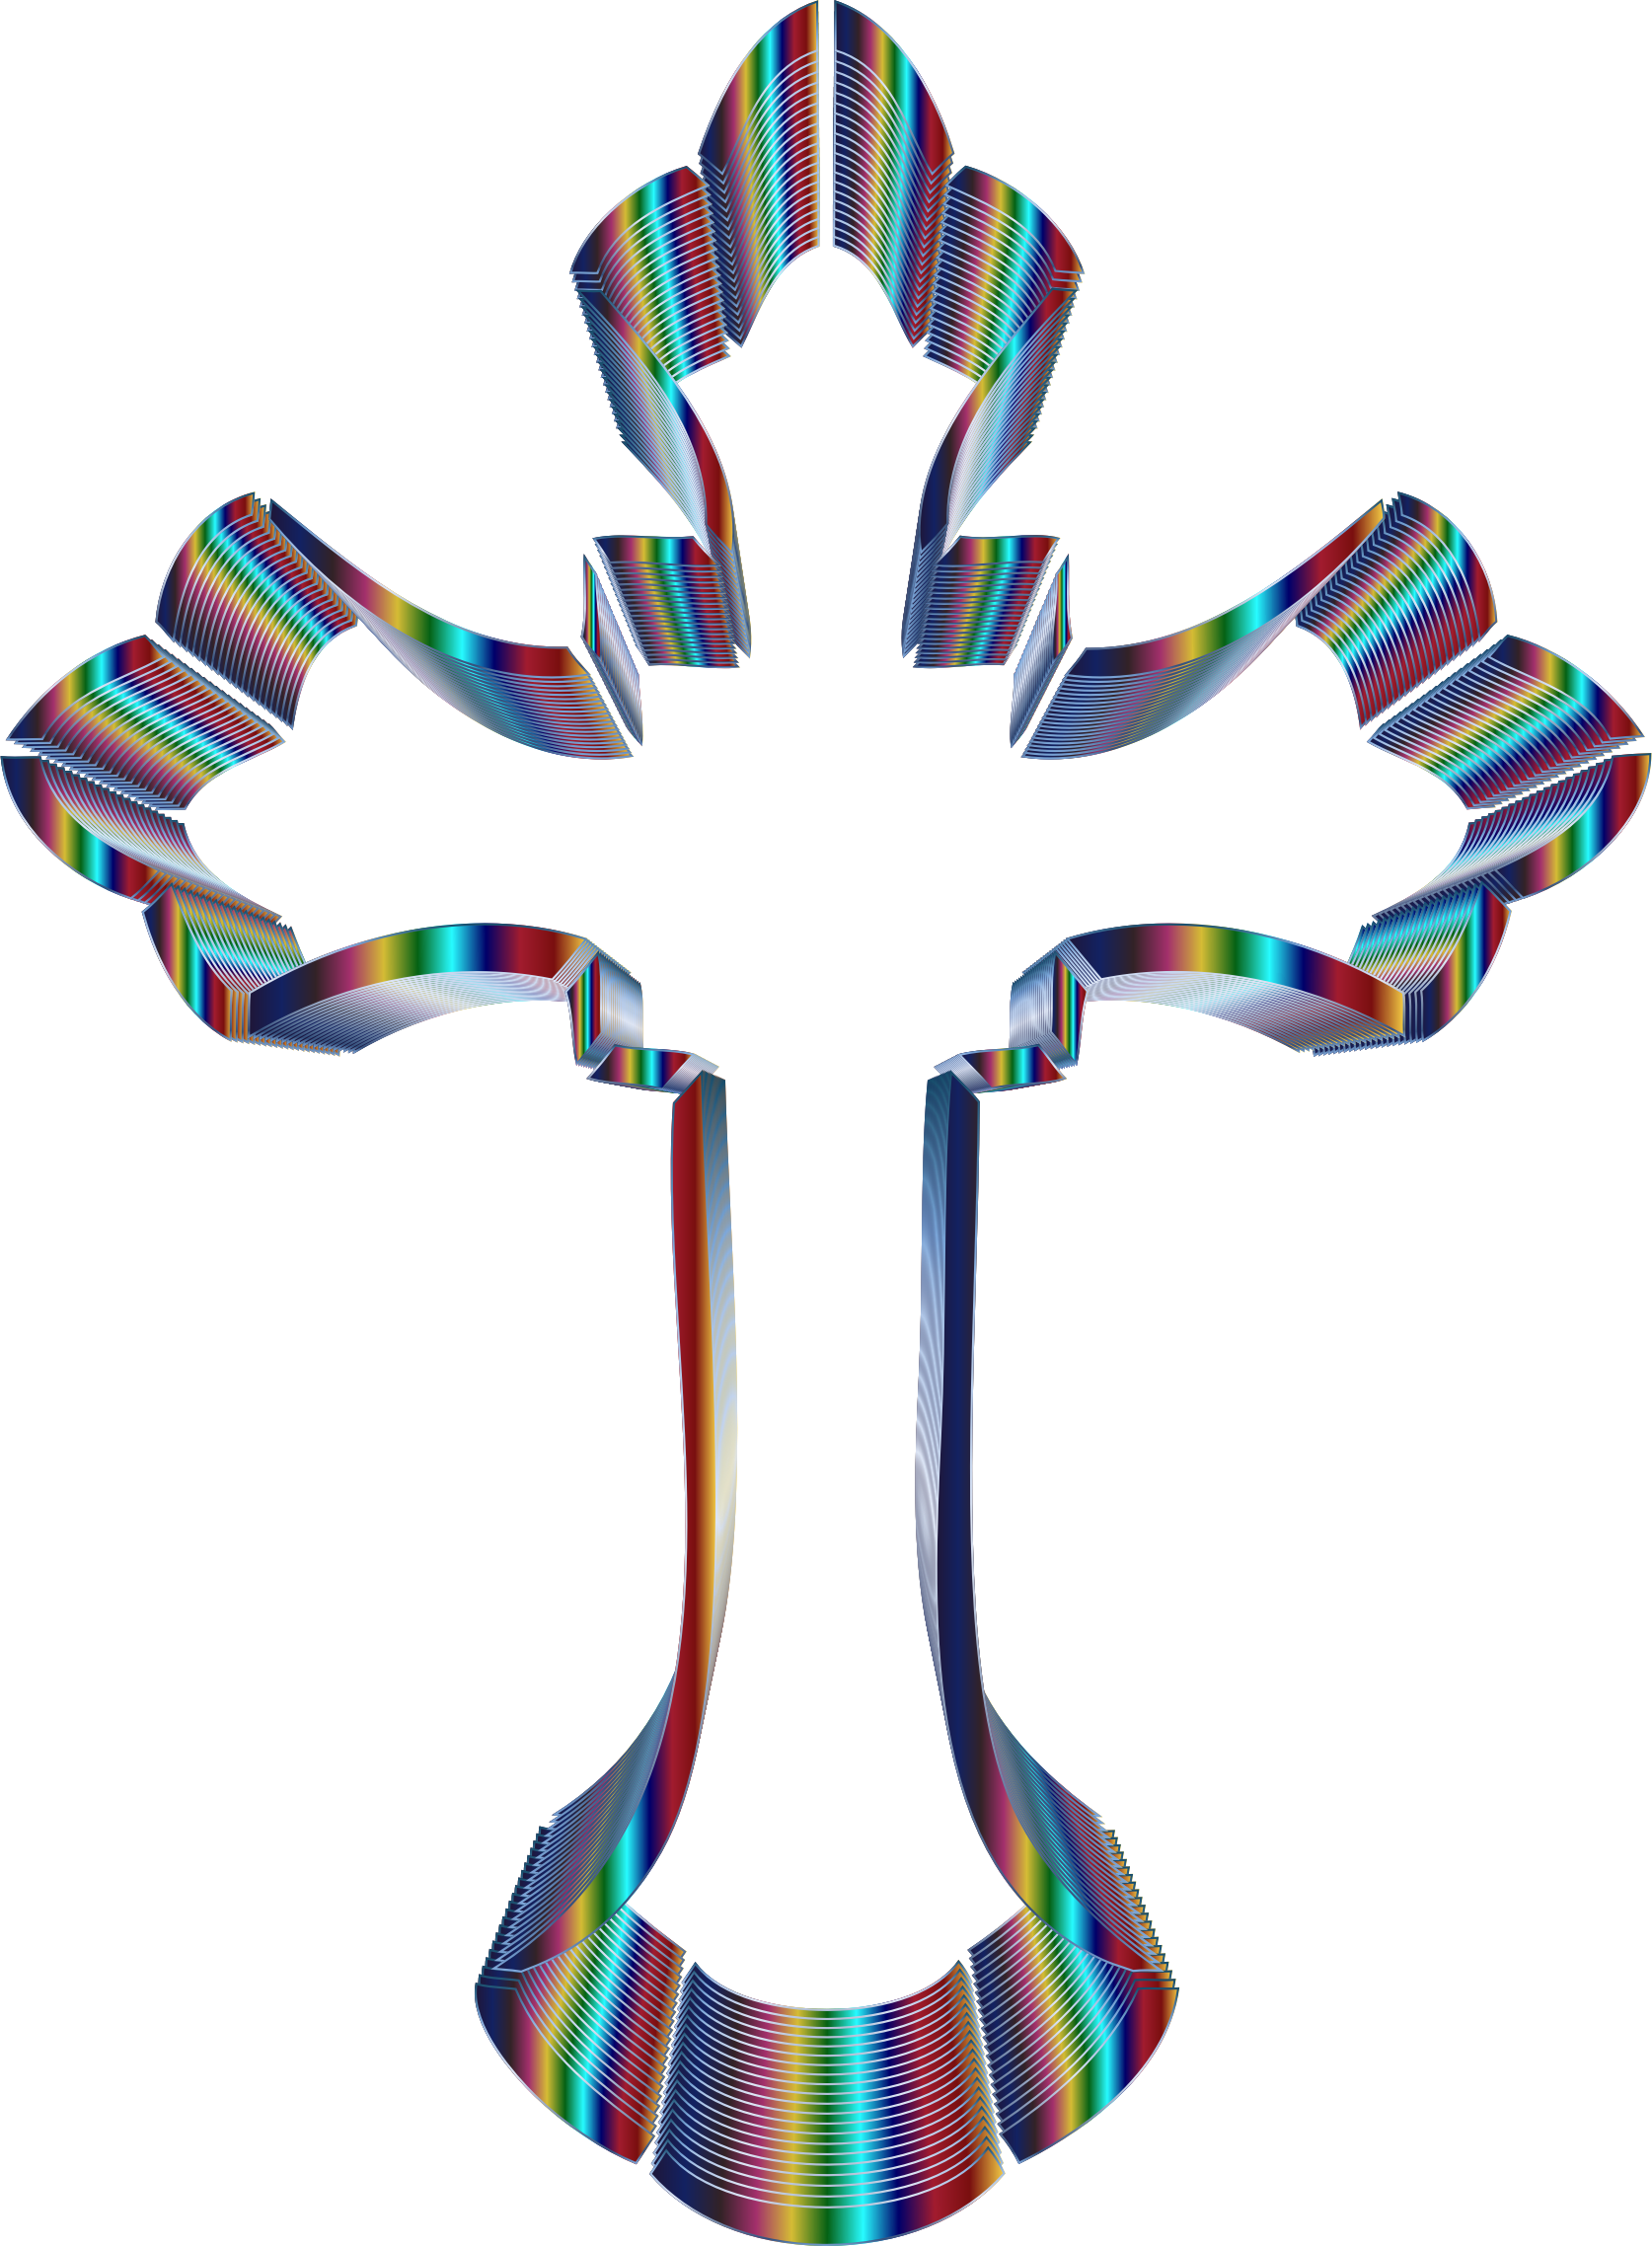 Ornate cross png. Clipart iridescent no background